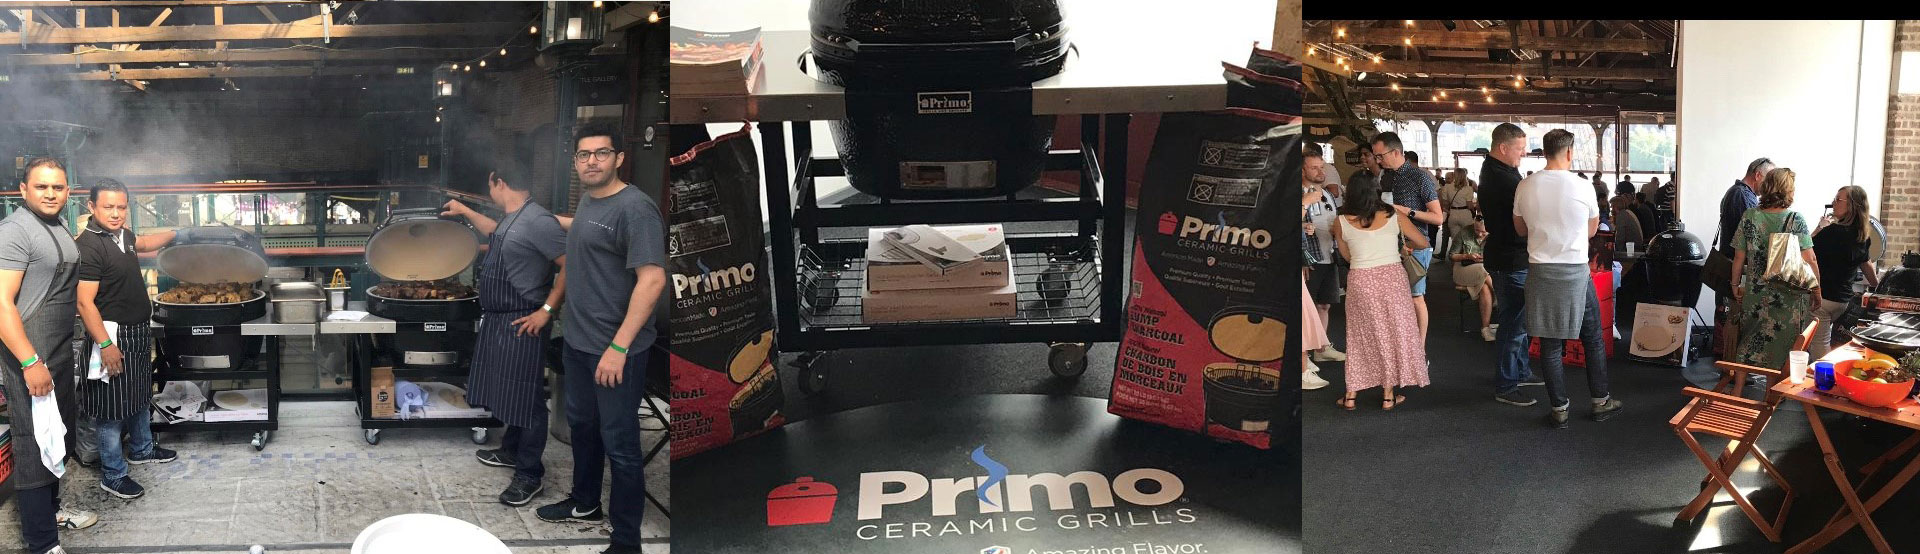 Professional Chefs and competition winners with Primo Ceramic Grills at Meatopia 2019